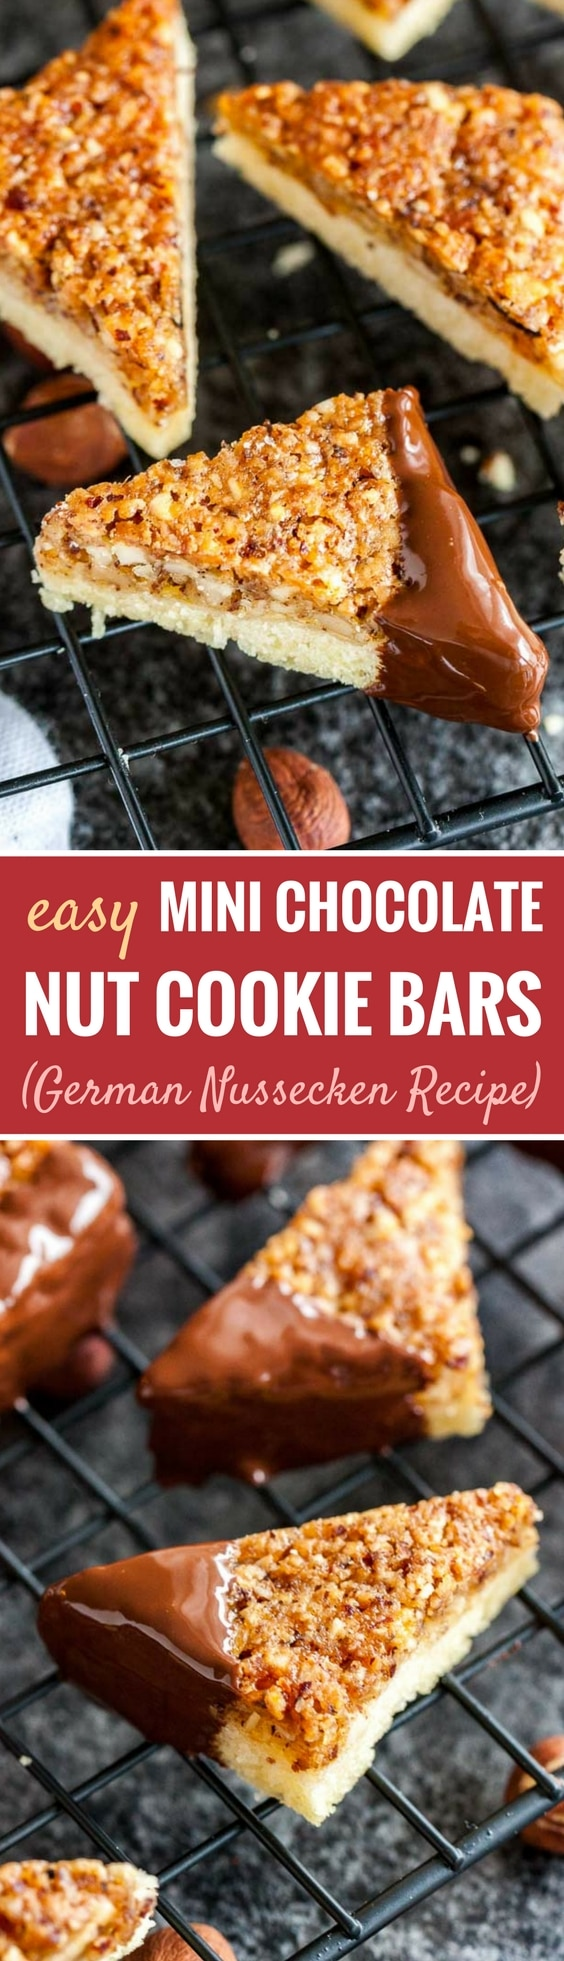 Nut Corners are called Nussecken in Germany and make a delicious addition to your cookie platter! Made with buttery shortbread, a sweet apricot jam layer, and a caramelized hazelnut topping, these mini nut bars are a favorite of my husband and a hit all year round.